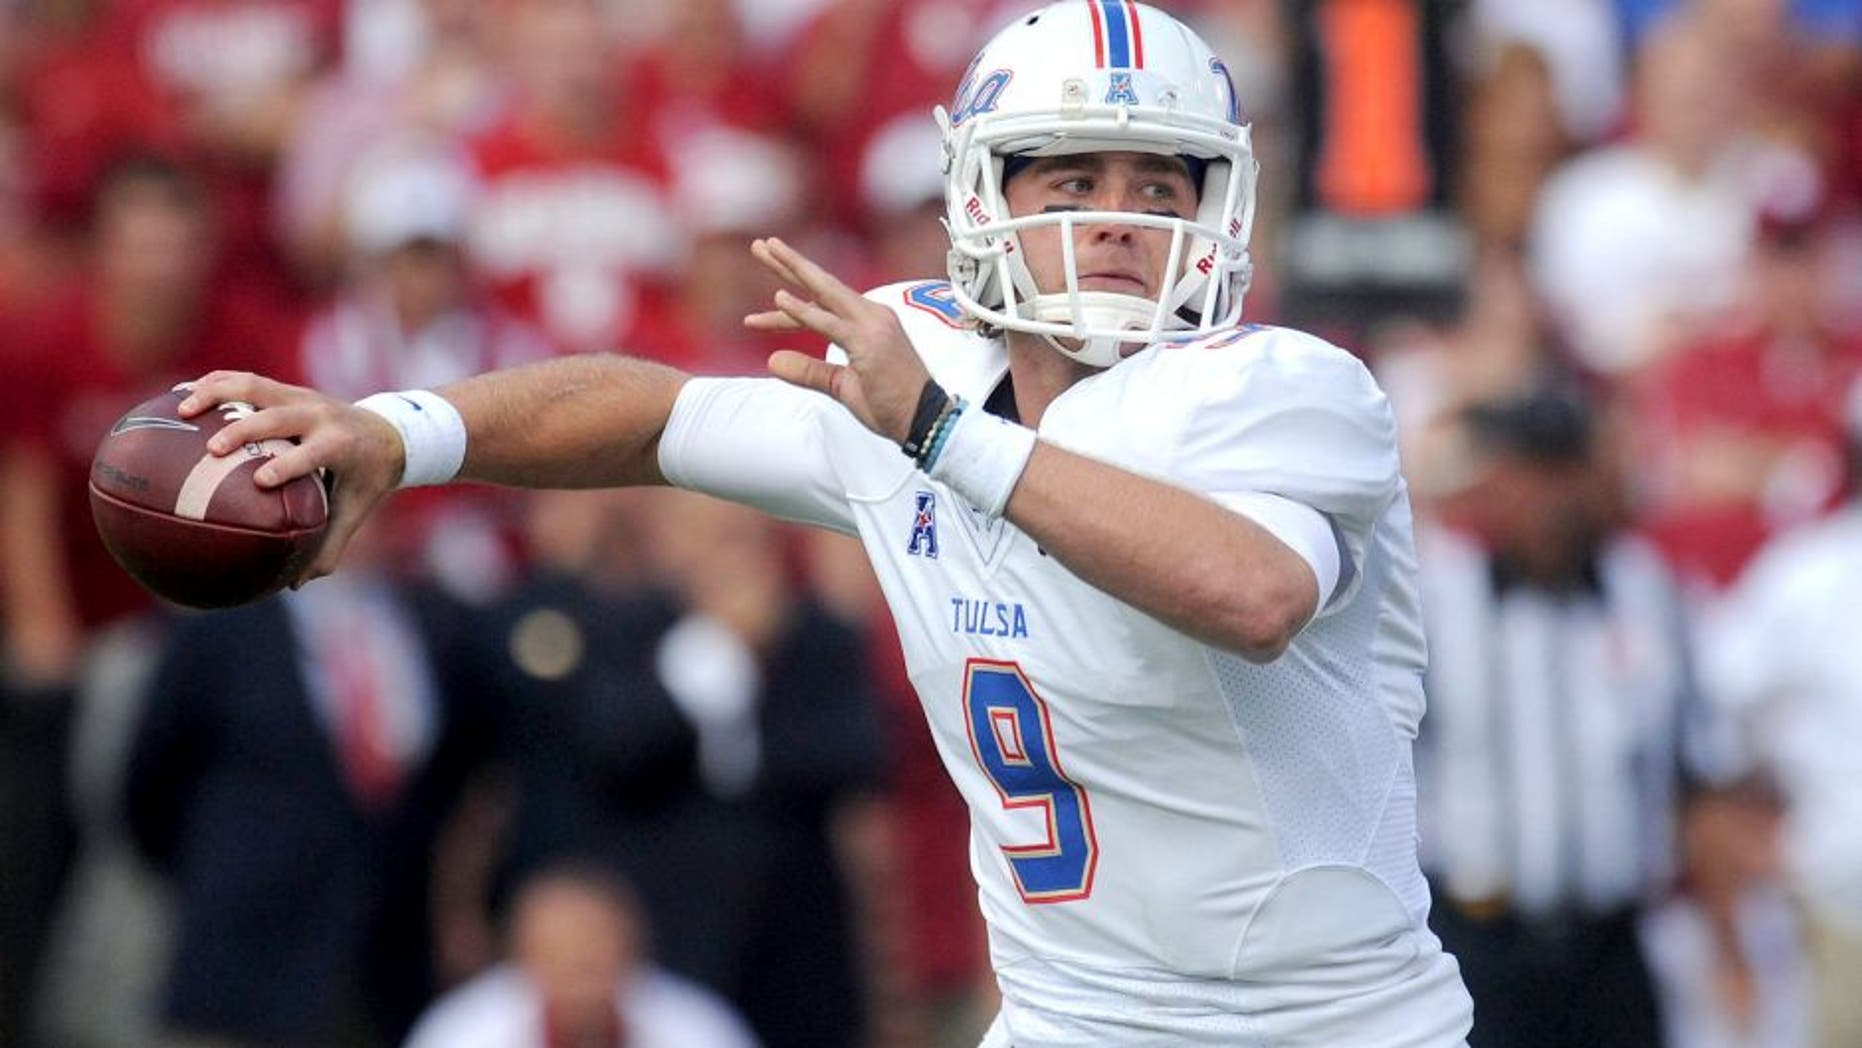 Sep 19, 2015; Norman, OK, USA; Tulsa Golden Hurricane quarterback Dane Evans (9) passes the ball against the Oklahoma Sooners in the fist quarter at Gaylord Family - Oklahoma Memorial Stadium. Mandatory Credit: Mark D. Smith-USA TODAY Sports